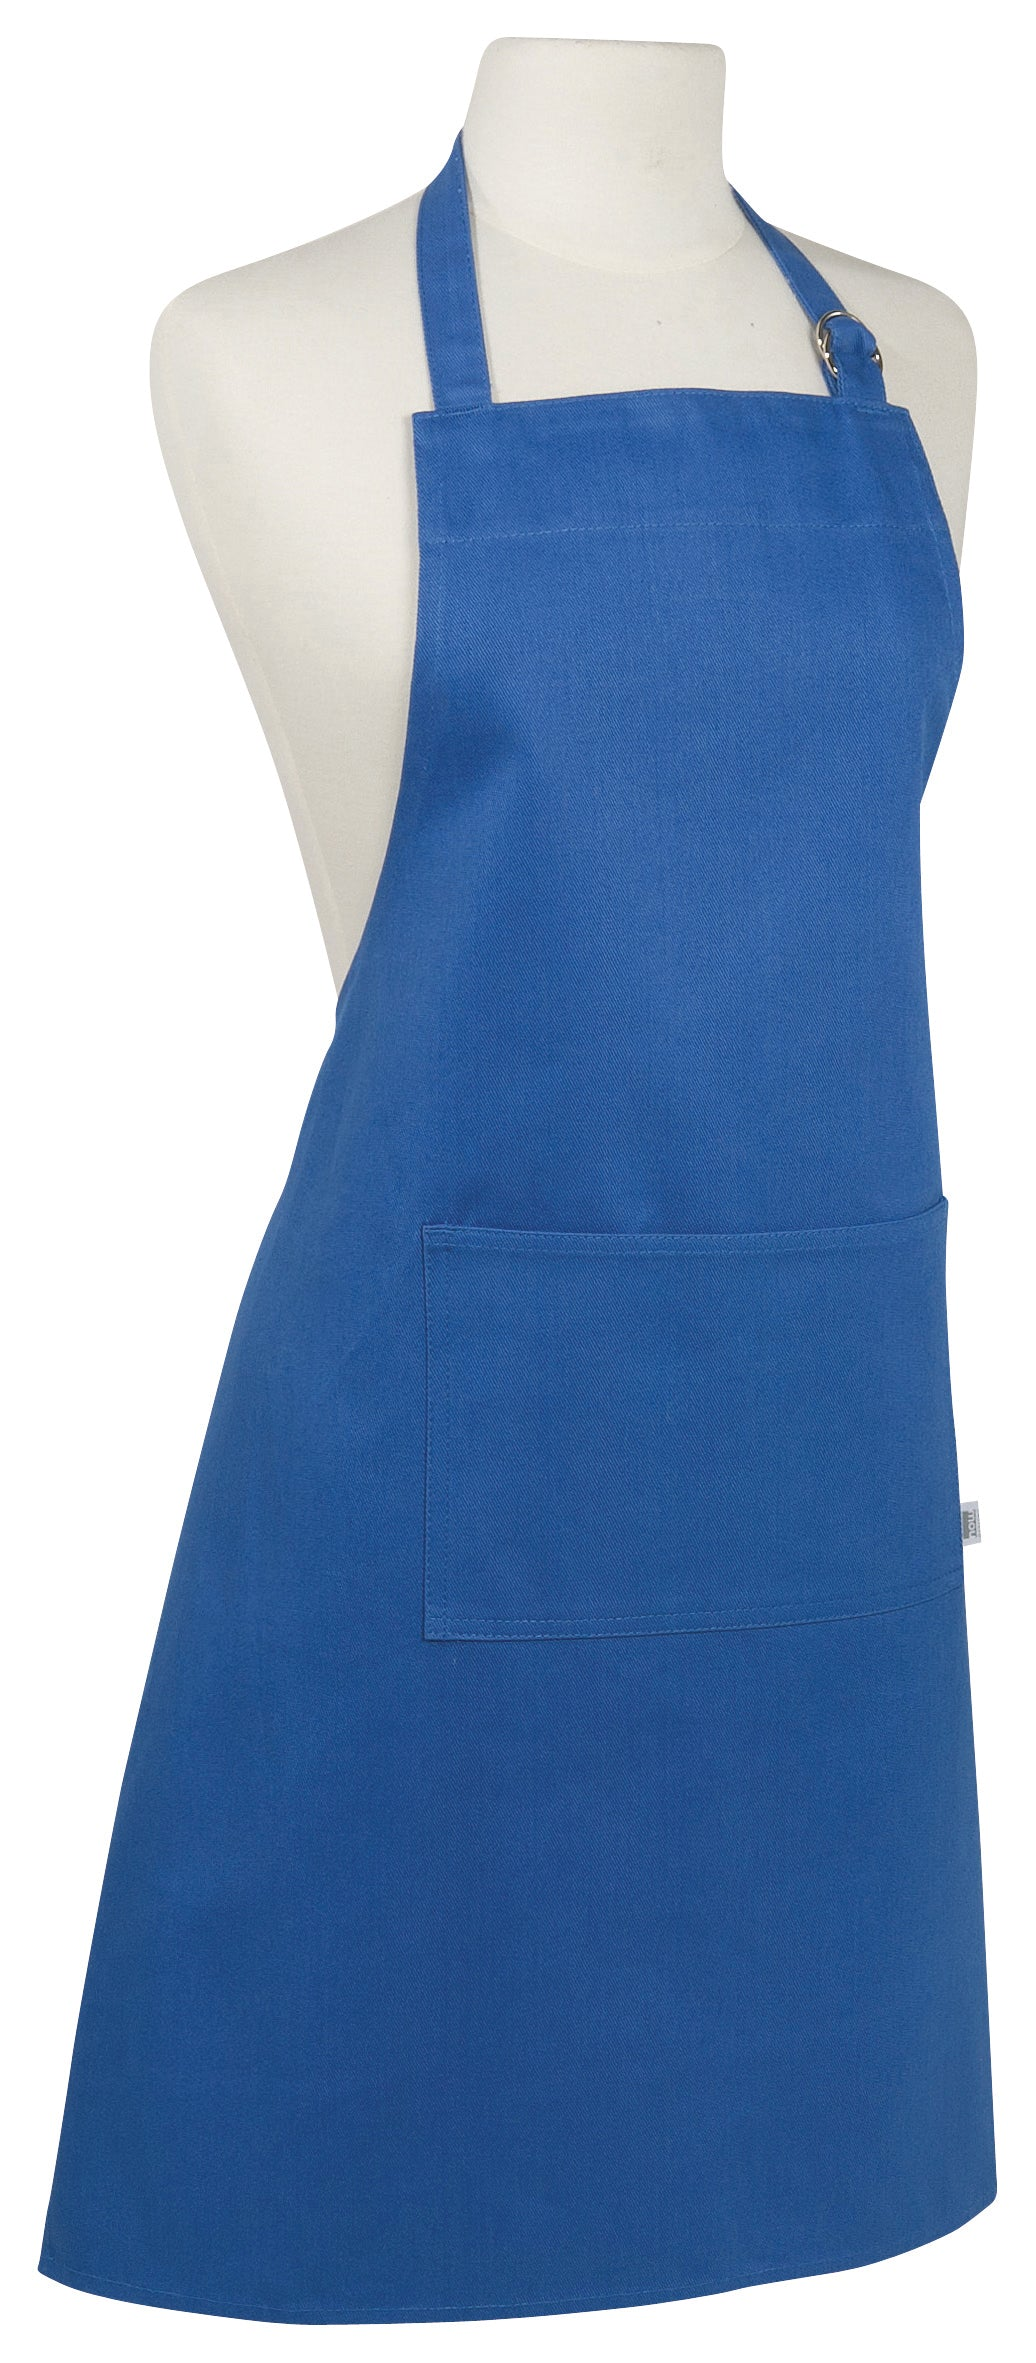 Monogrammed Royal Blue Chef Apron